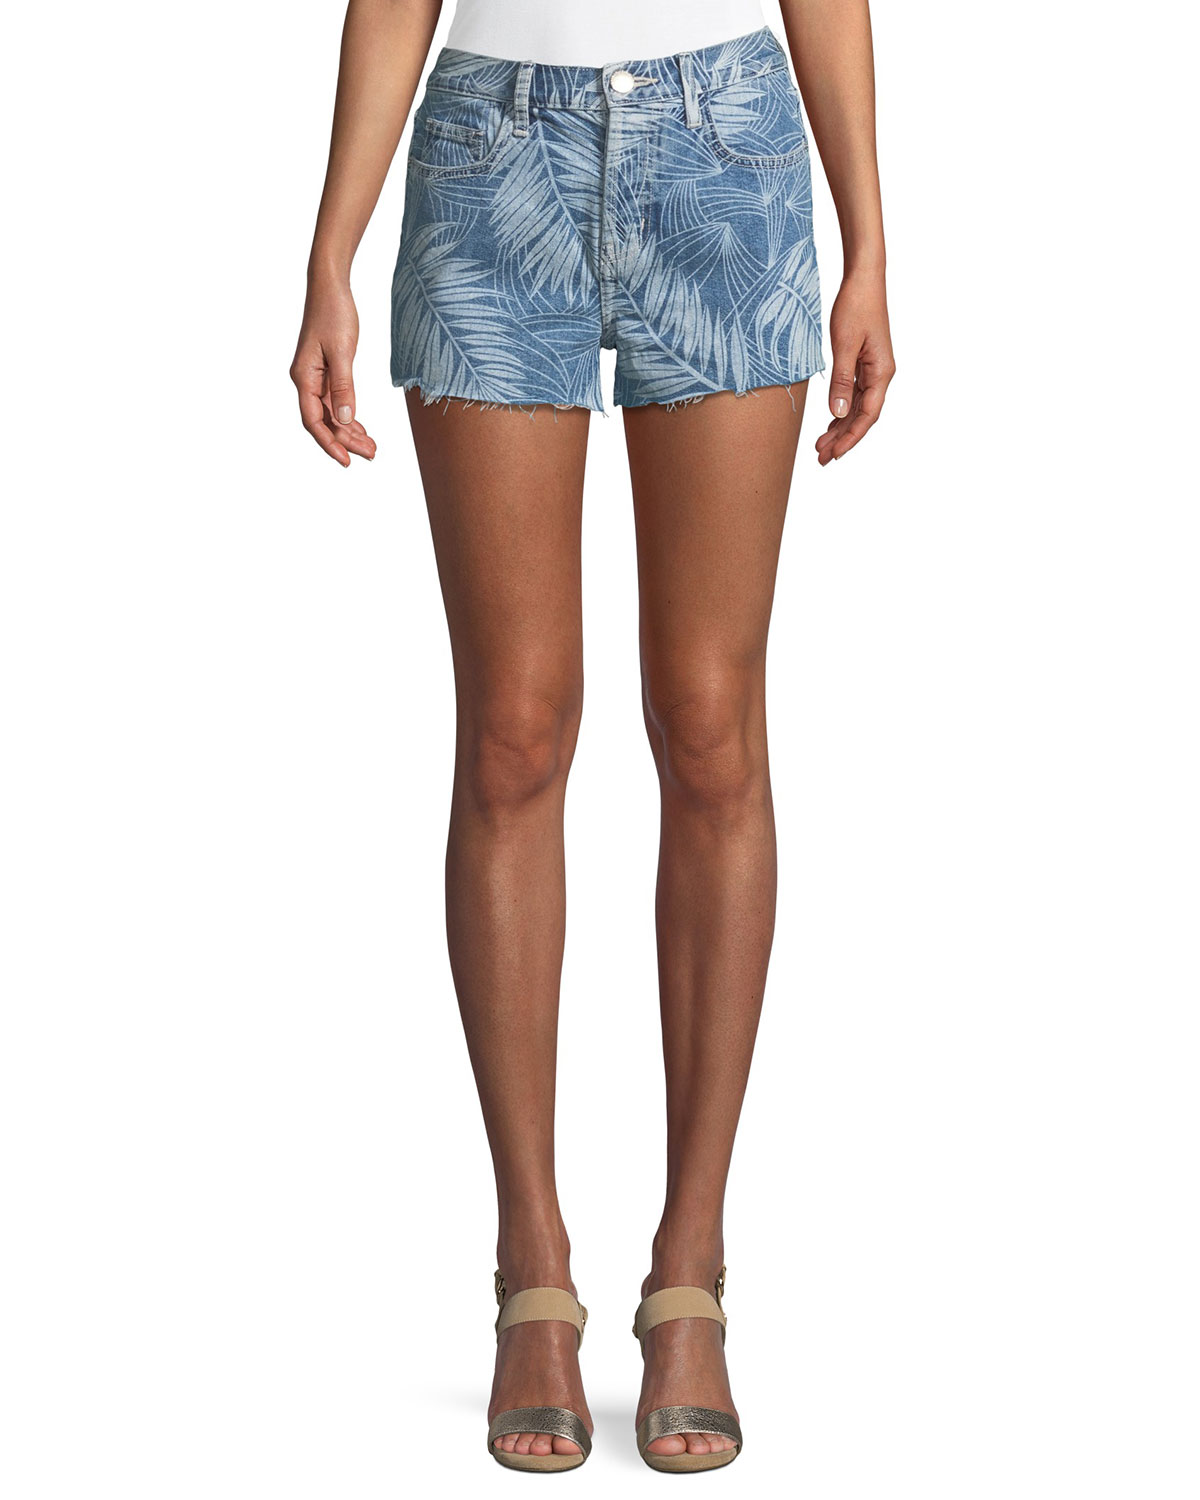 The Ultra High-Waist Palm-Print Cutoff Shorts